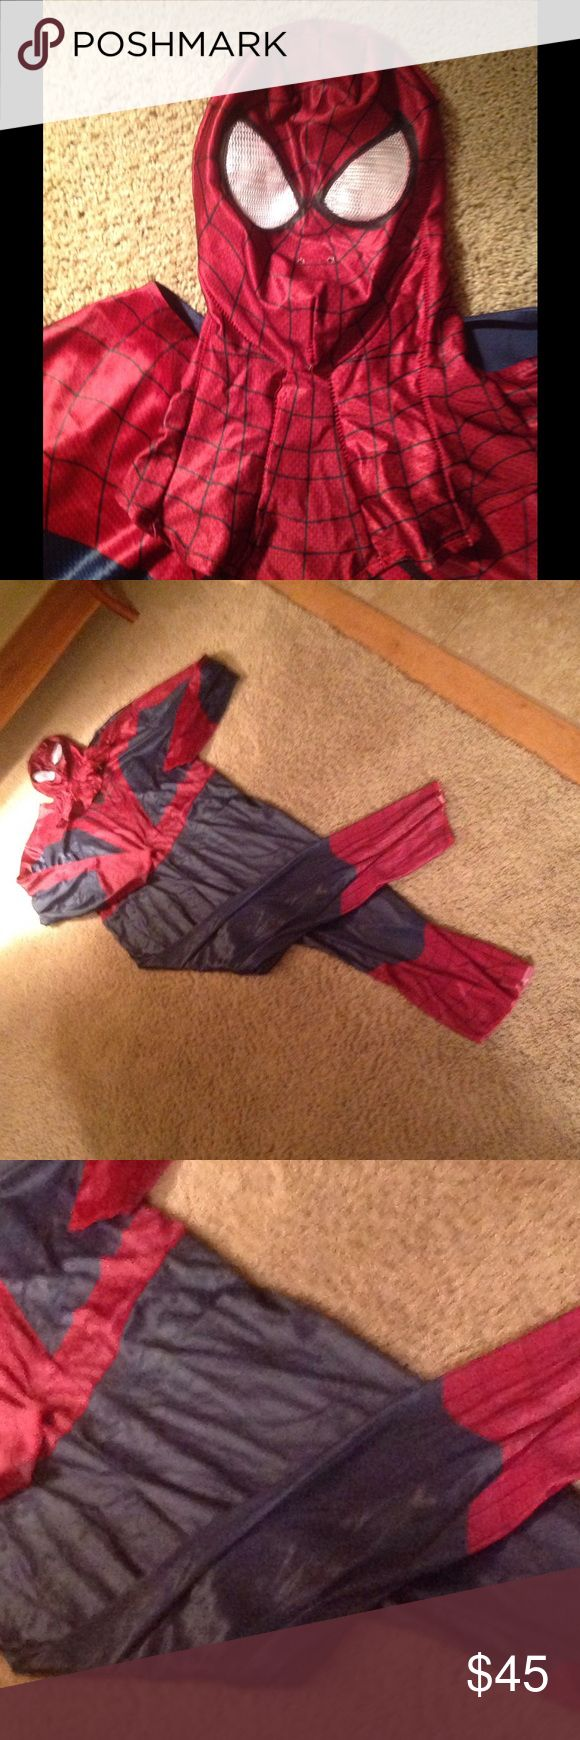 "🎃Men's Quality Spider-Man costume in EUC. Looks authentic in color of the modern day character. Not skin tight. 63"" from shoulder to end of pant. 26"" inseam, so it is a drop crotch. Chest 50"". Worn for a couple hours last year. Laundered and will come in original package. Ships same or next day. Spiderman Other"